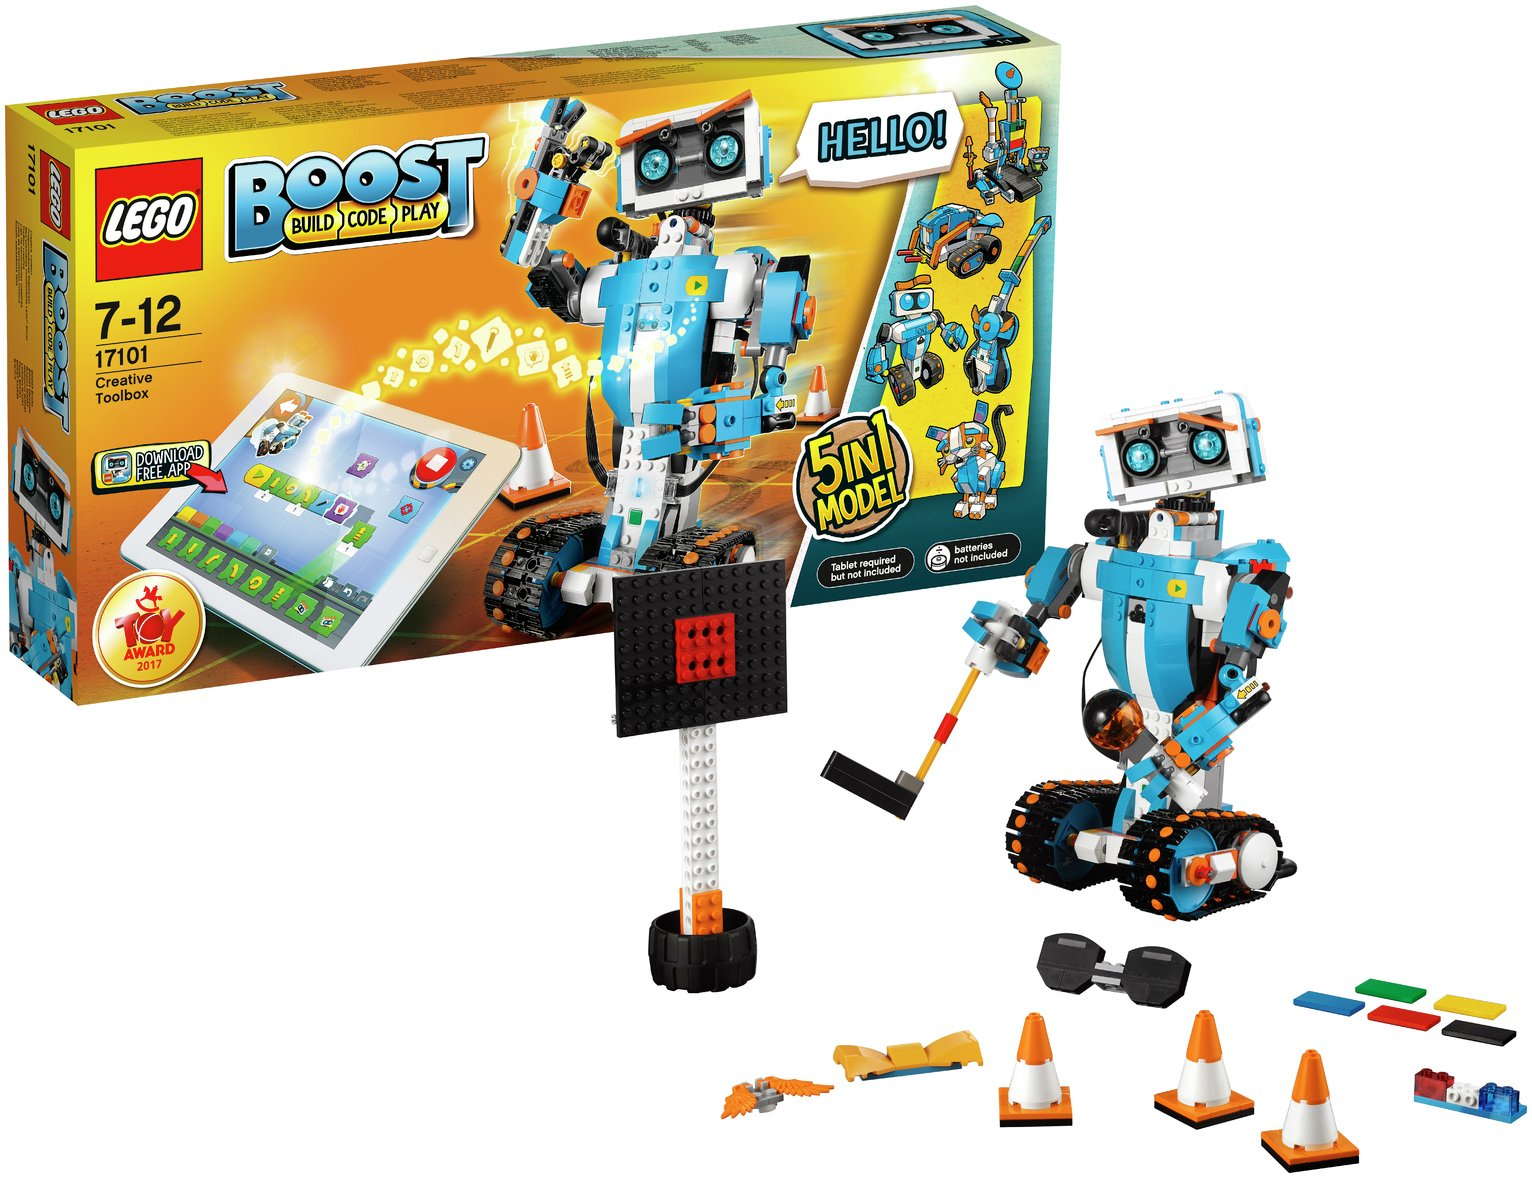 LEGO Boost Creative Toolbox - 17101